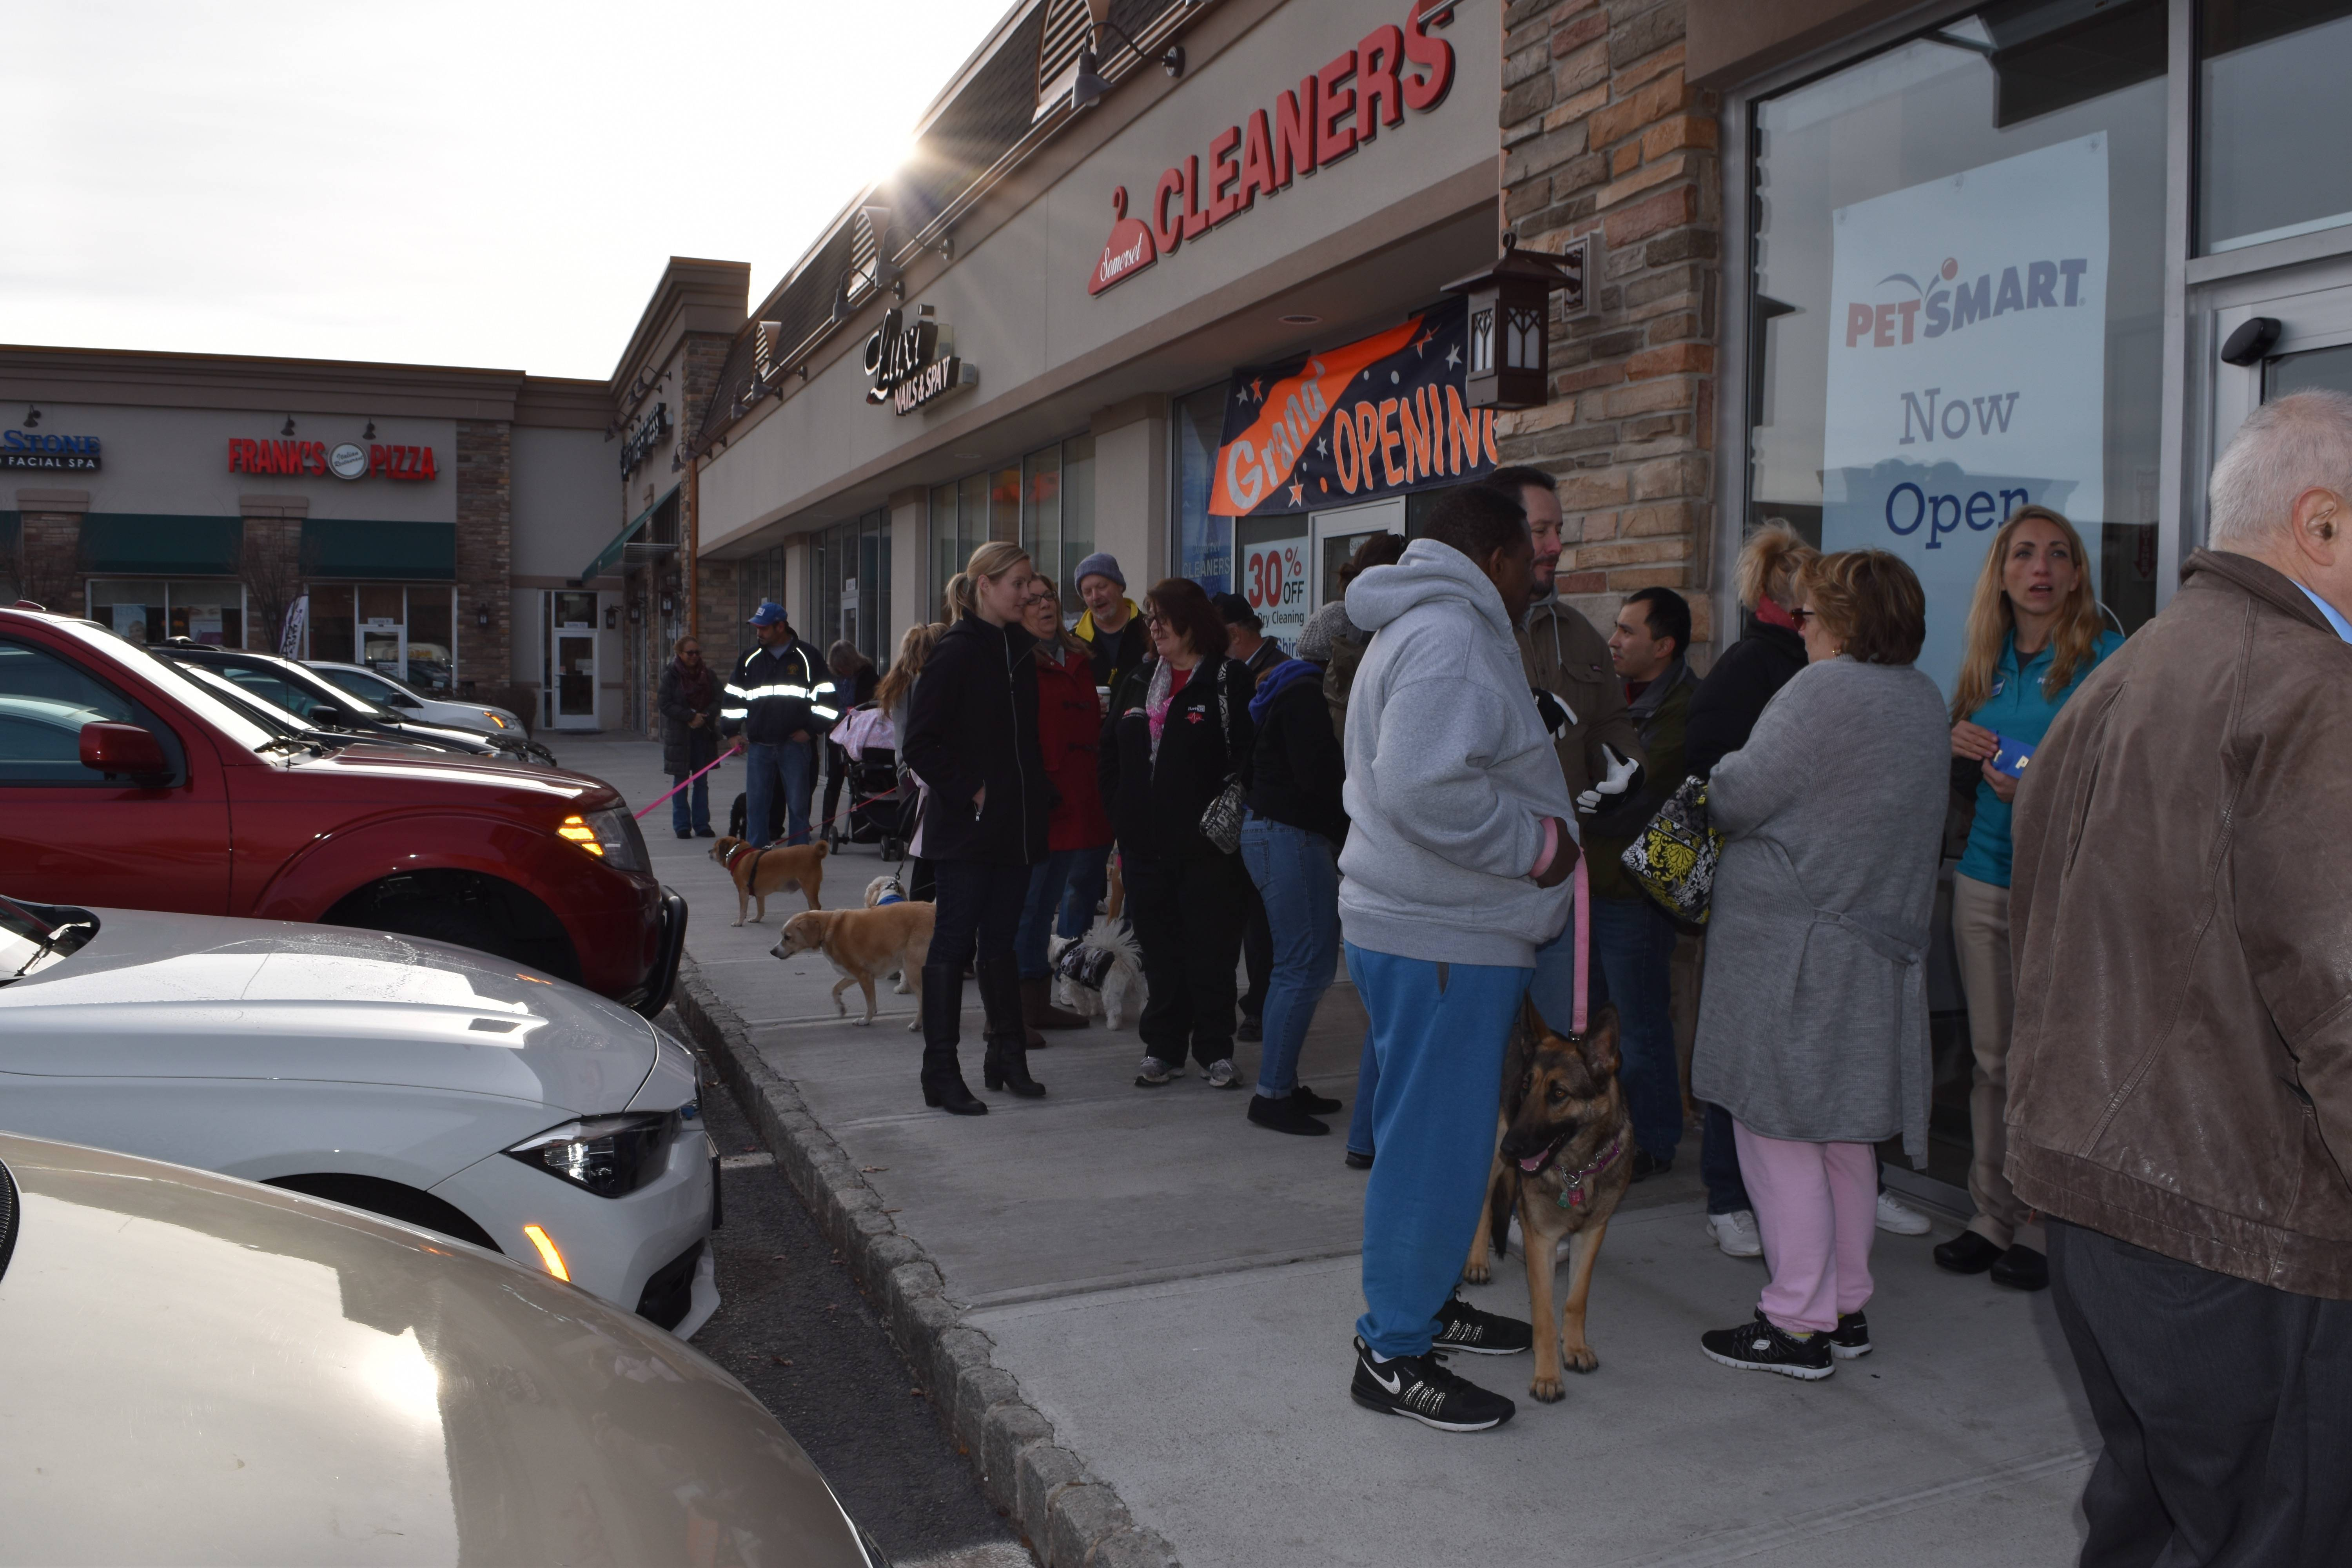 Petsmart